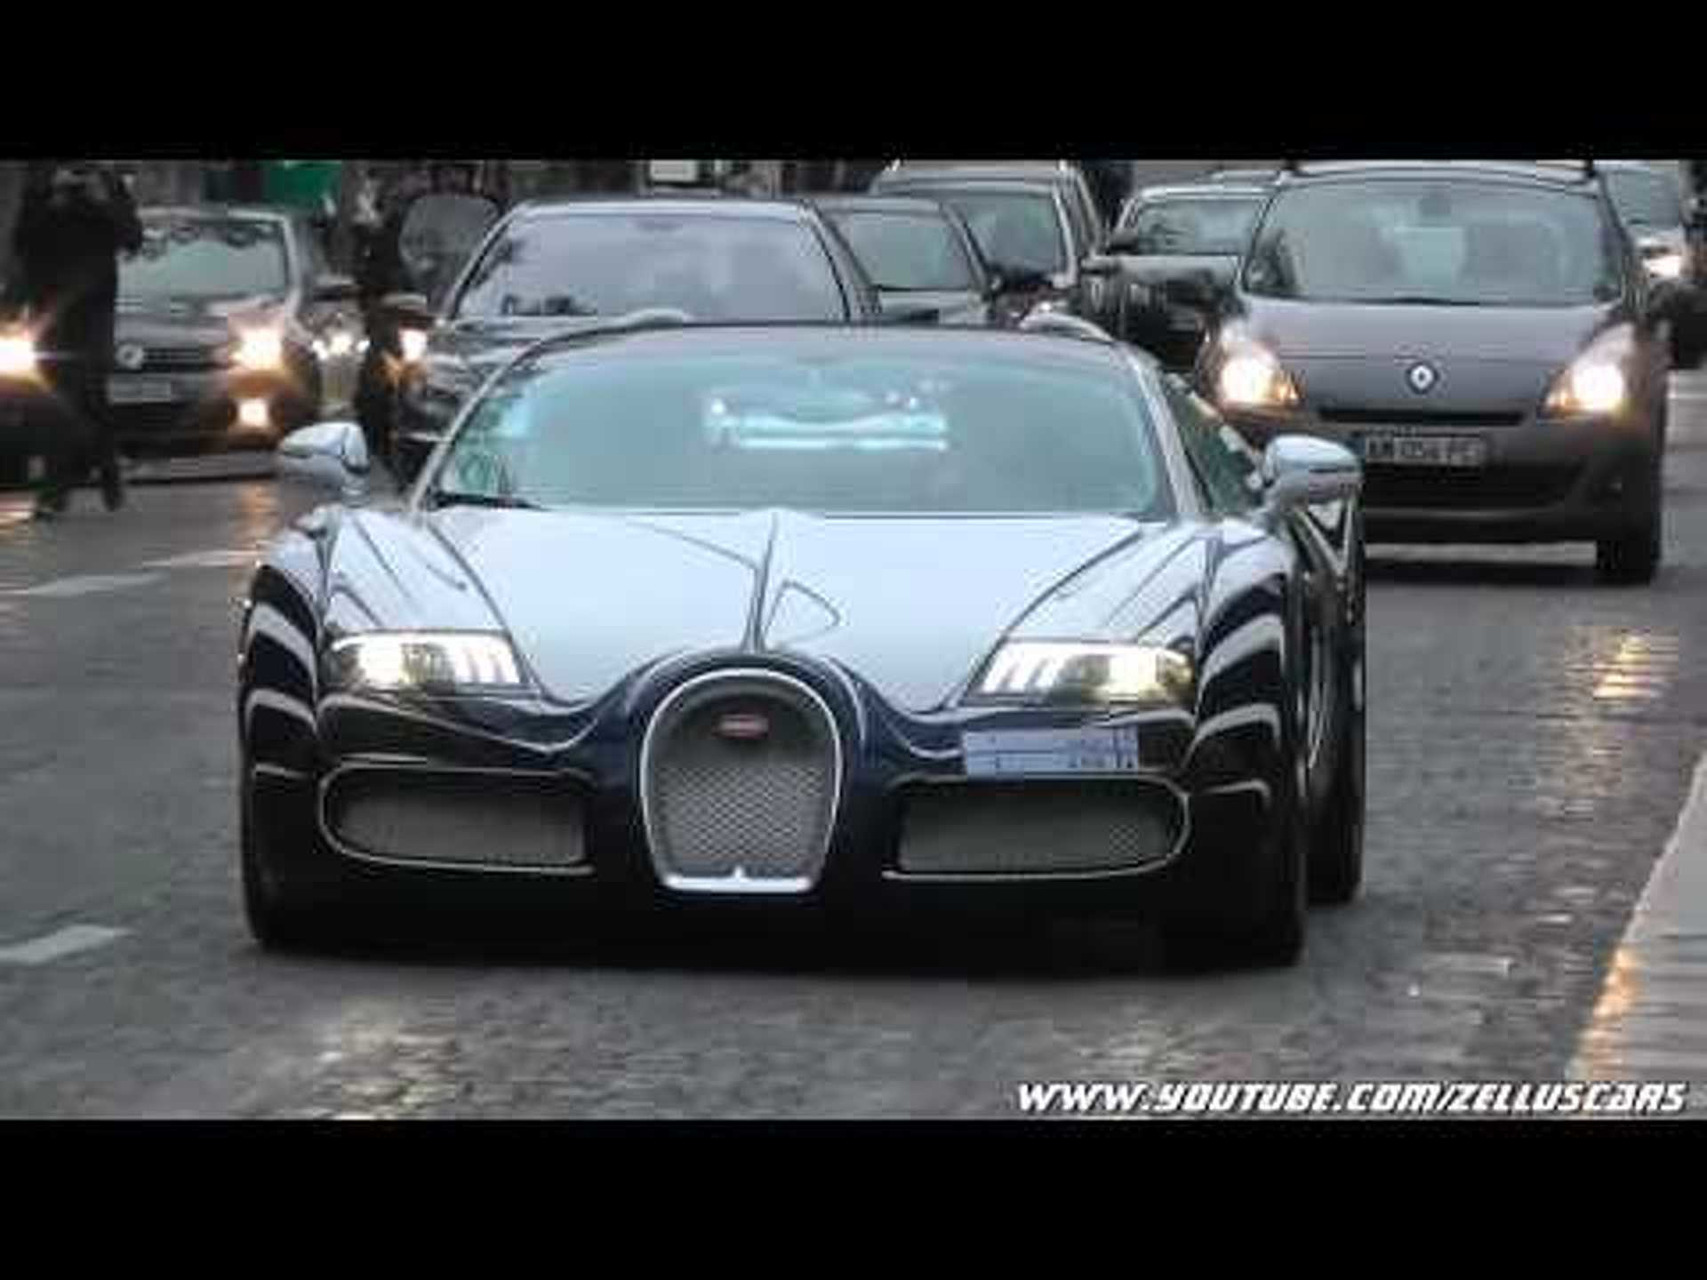 Bugatti Veyron L'Or Blanc on the road in Paris !! Start up and accelerate